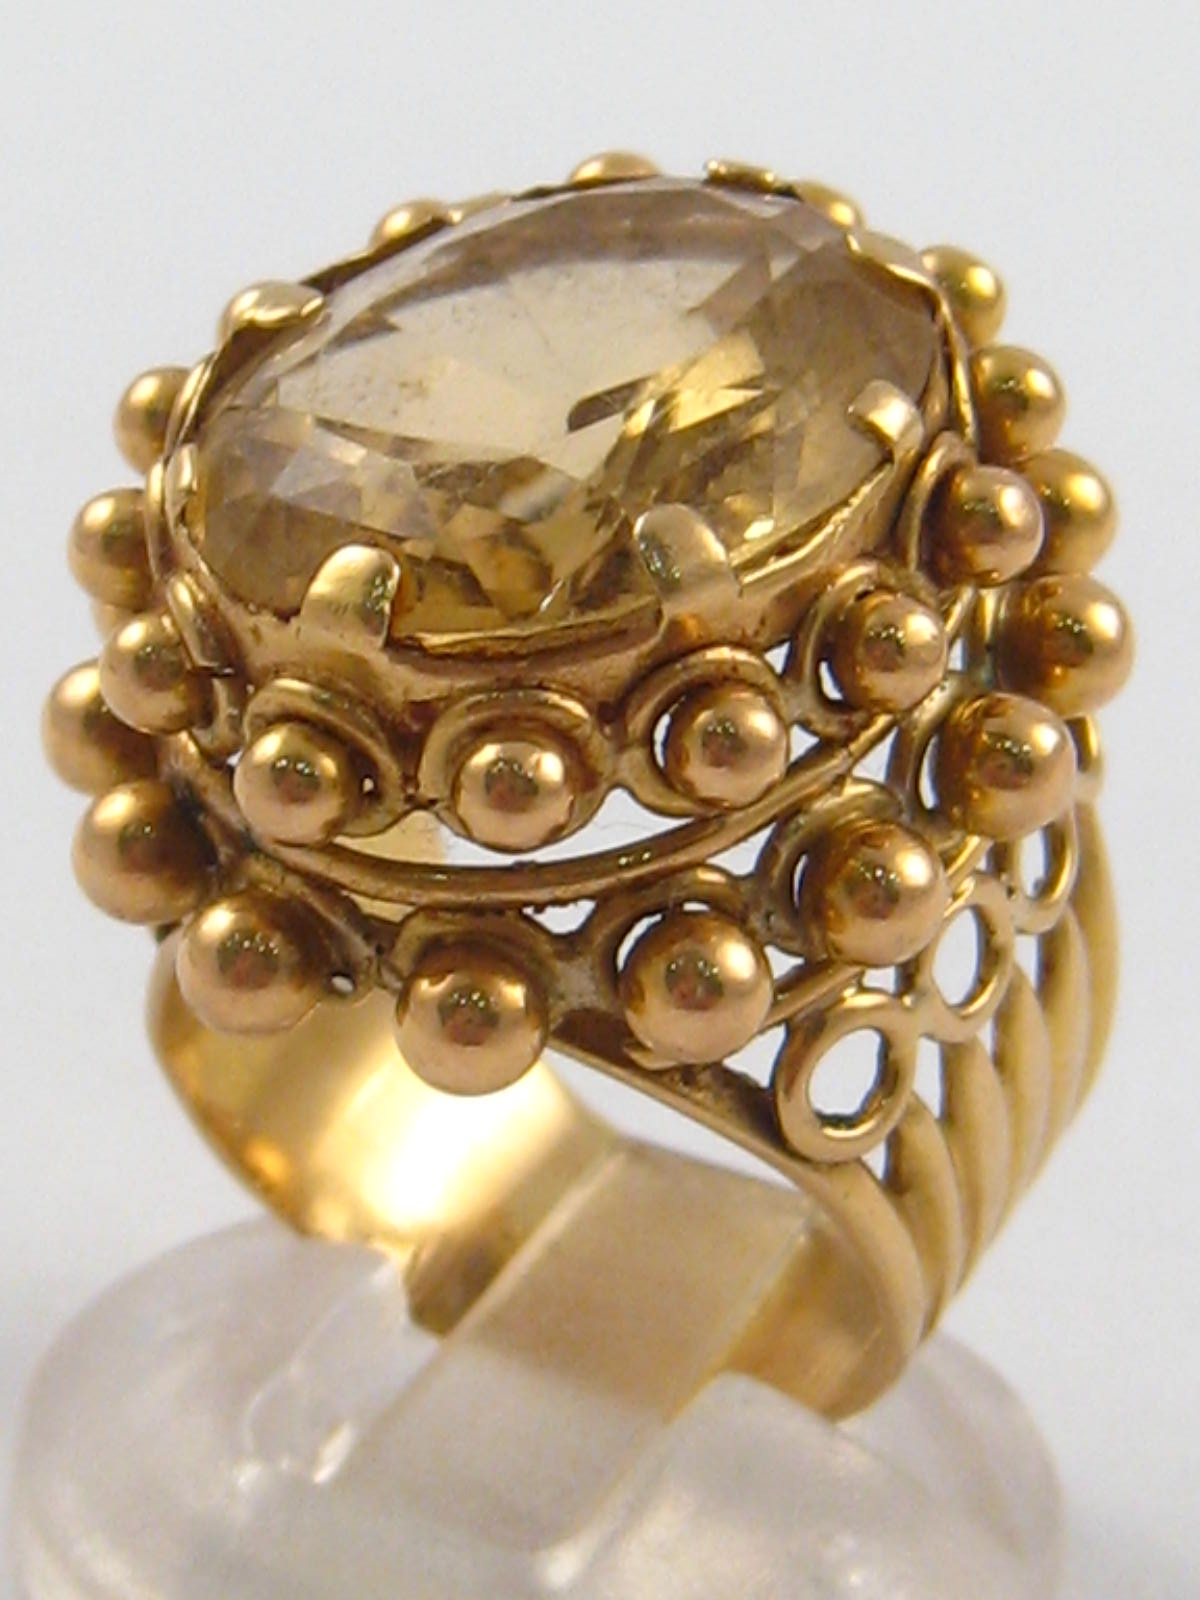 A yellow metal (tests 18 carat gold) citrine ring, citrine approx. 18 x 14mm, ring size M, 12.7 gms.